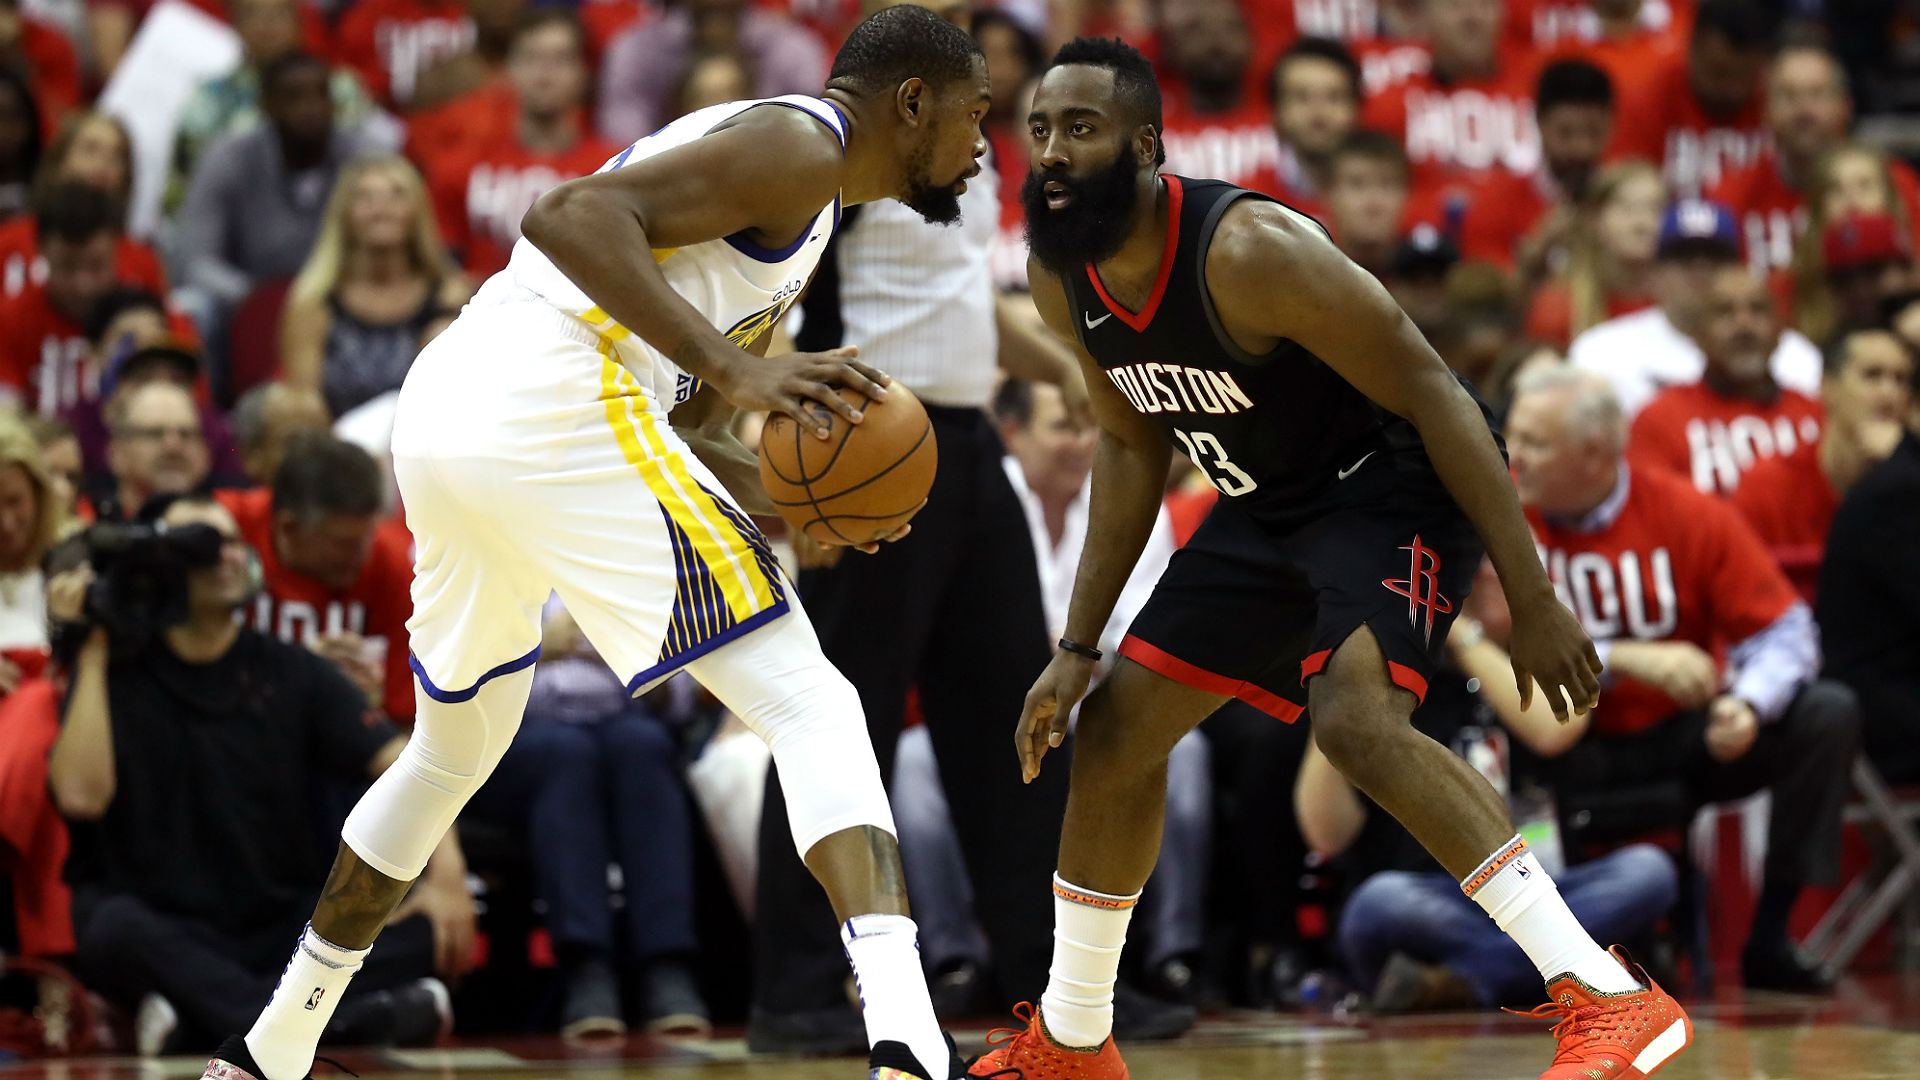 Houston Rockets Drop Game 1 WCF to Warriors in Houston